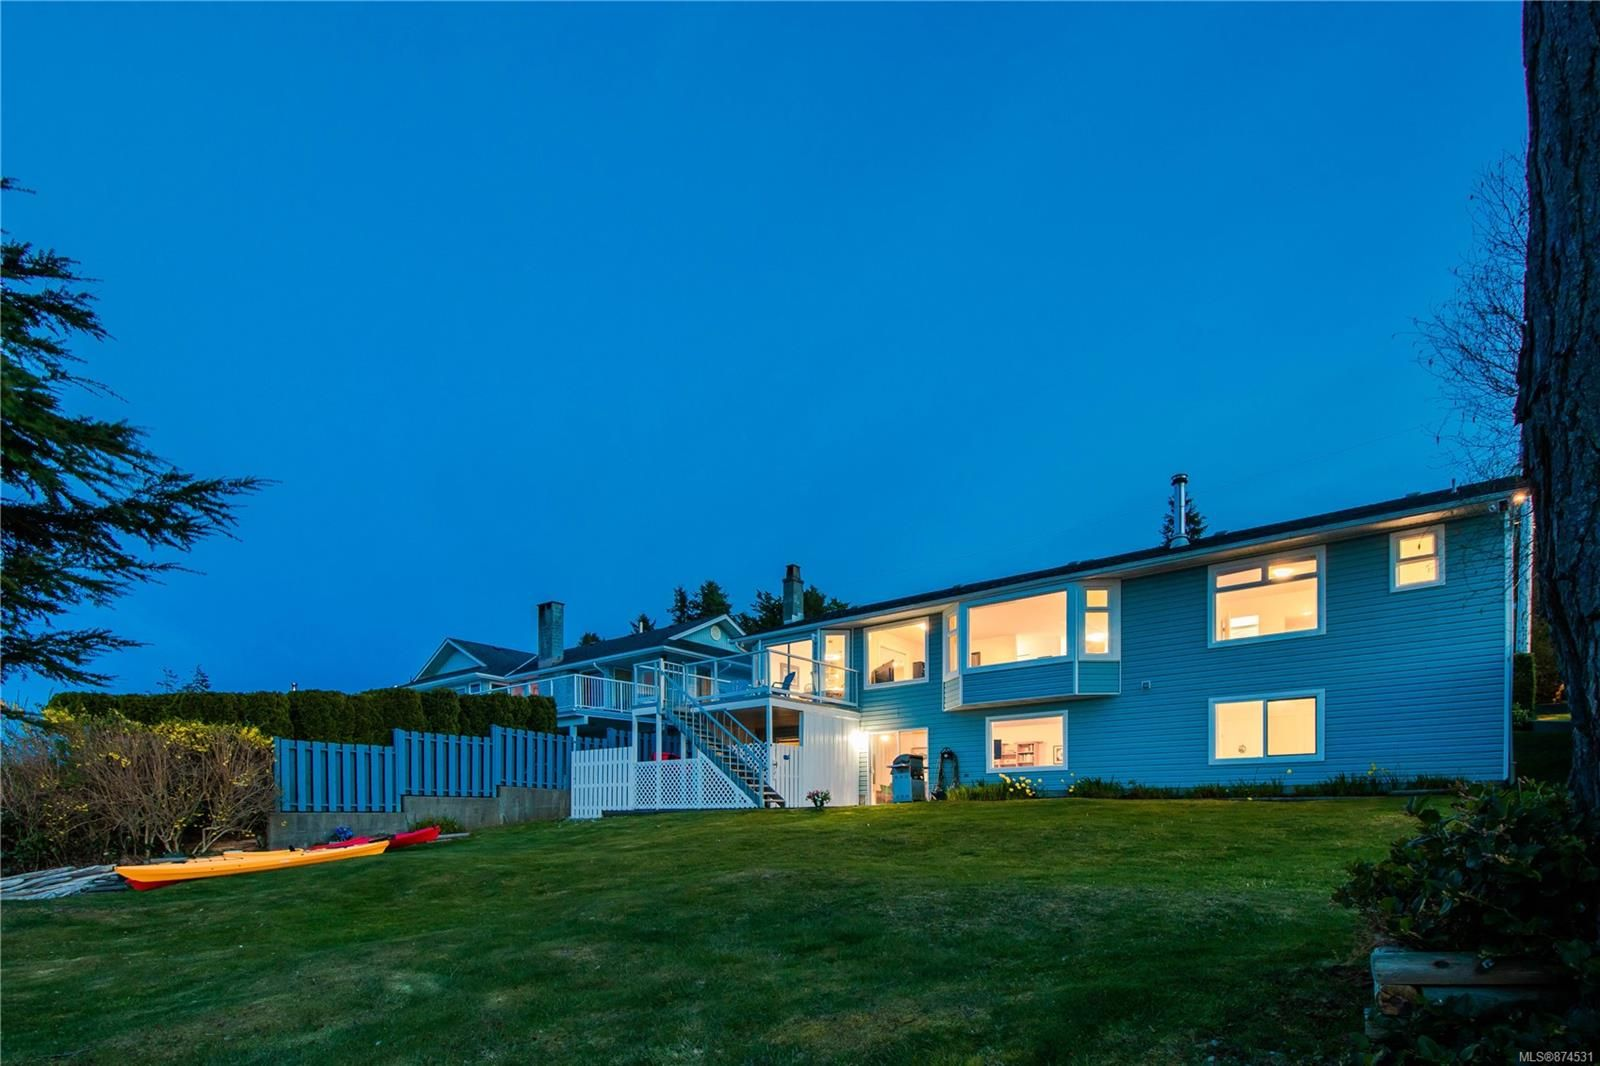 Main Photo: 2124 Beach Dr in : NI Port McNeill House for sale (North Island)  : MLS®# 874531